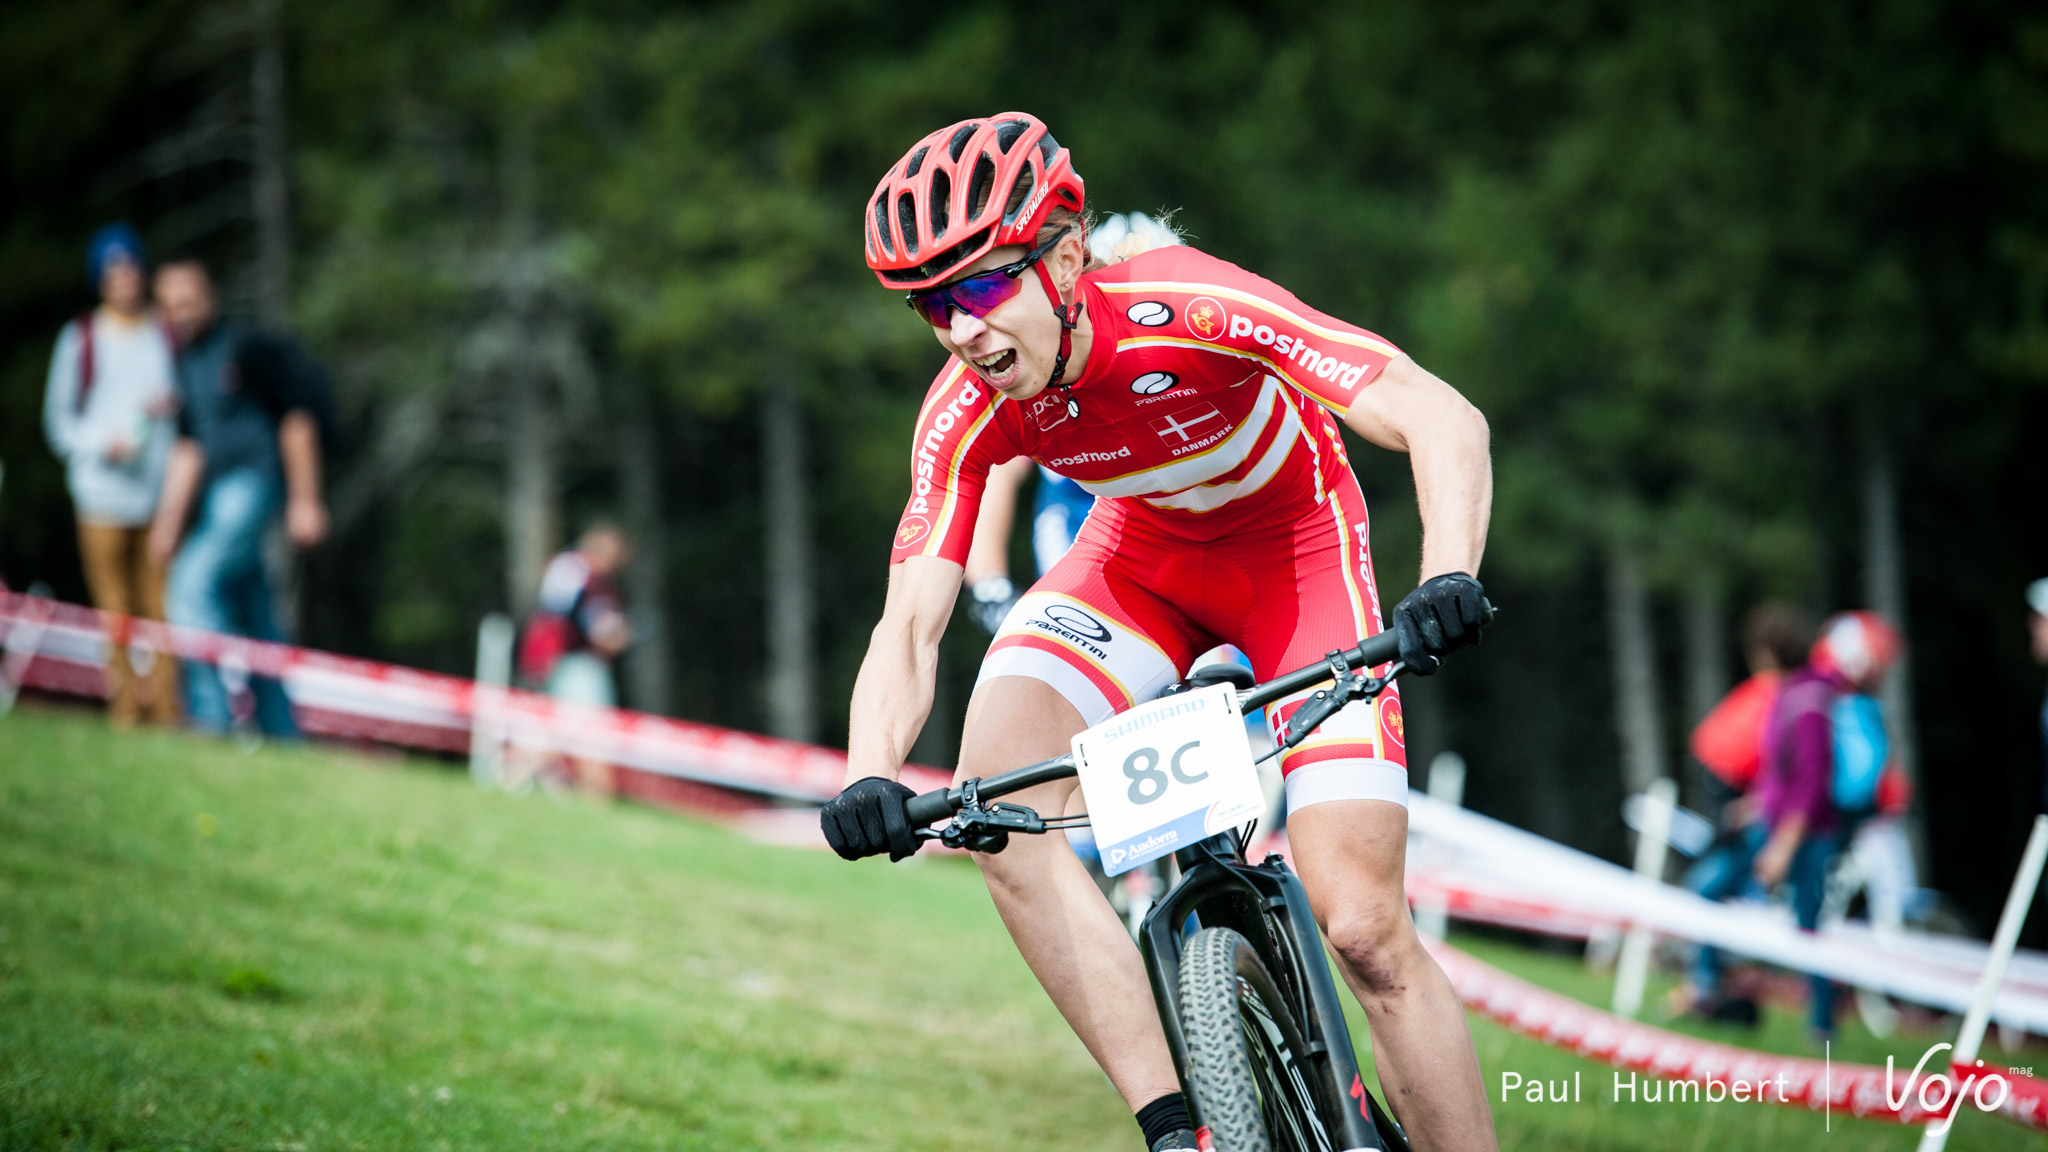 Worldchamps-2015-vojo-paul-humbert-xc-relai-8